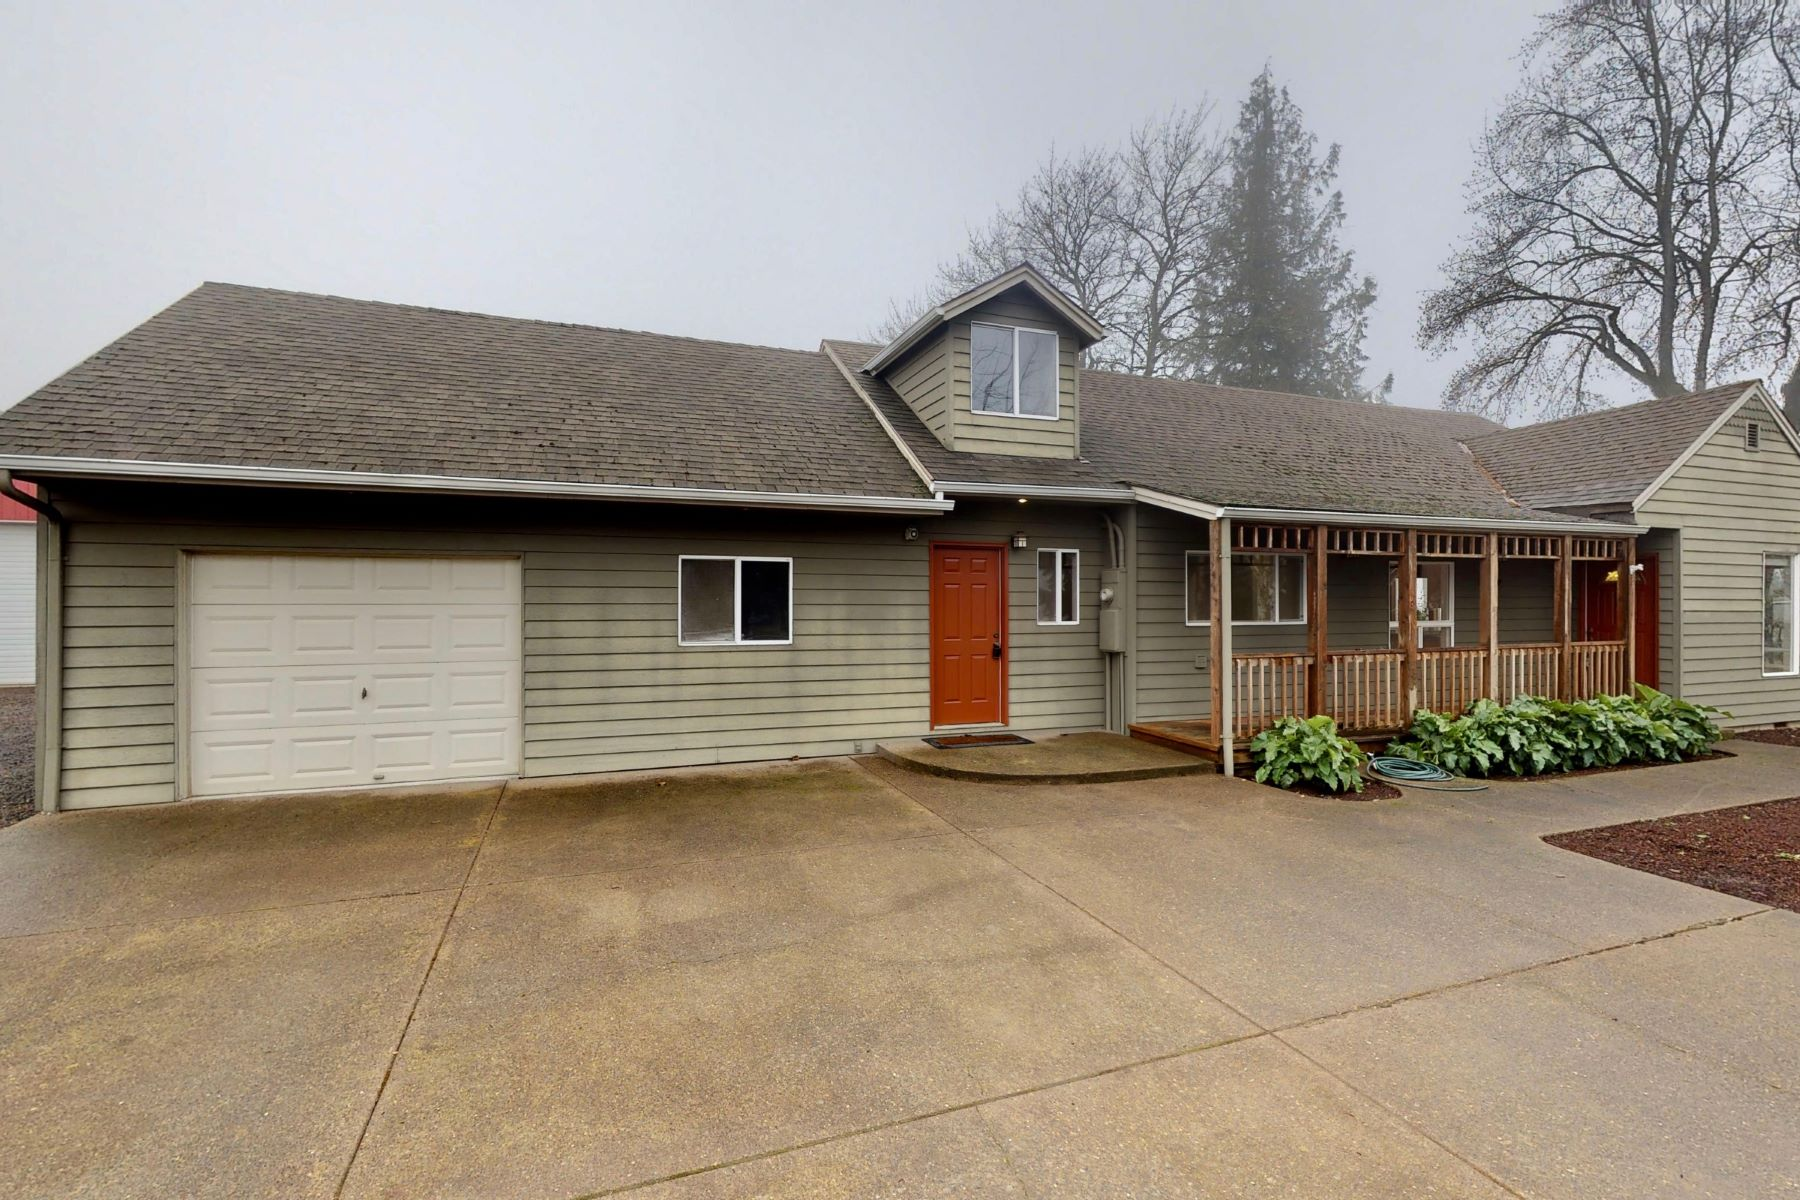 Single Family Homes for Active at A Change of Pace from City Life 14692 River Rd NE Gervais, Oregon 97026 United States